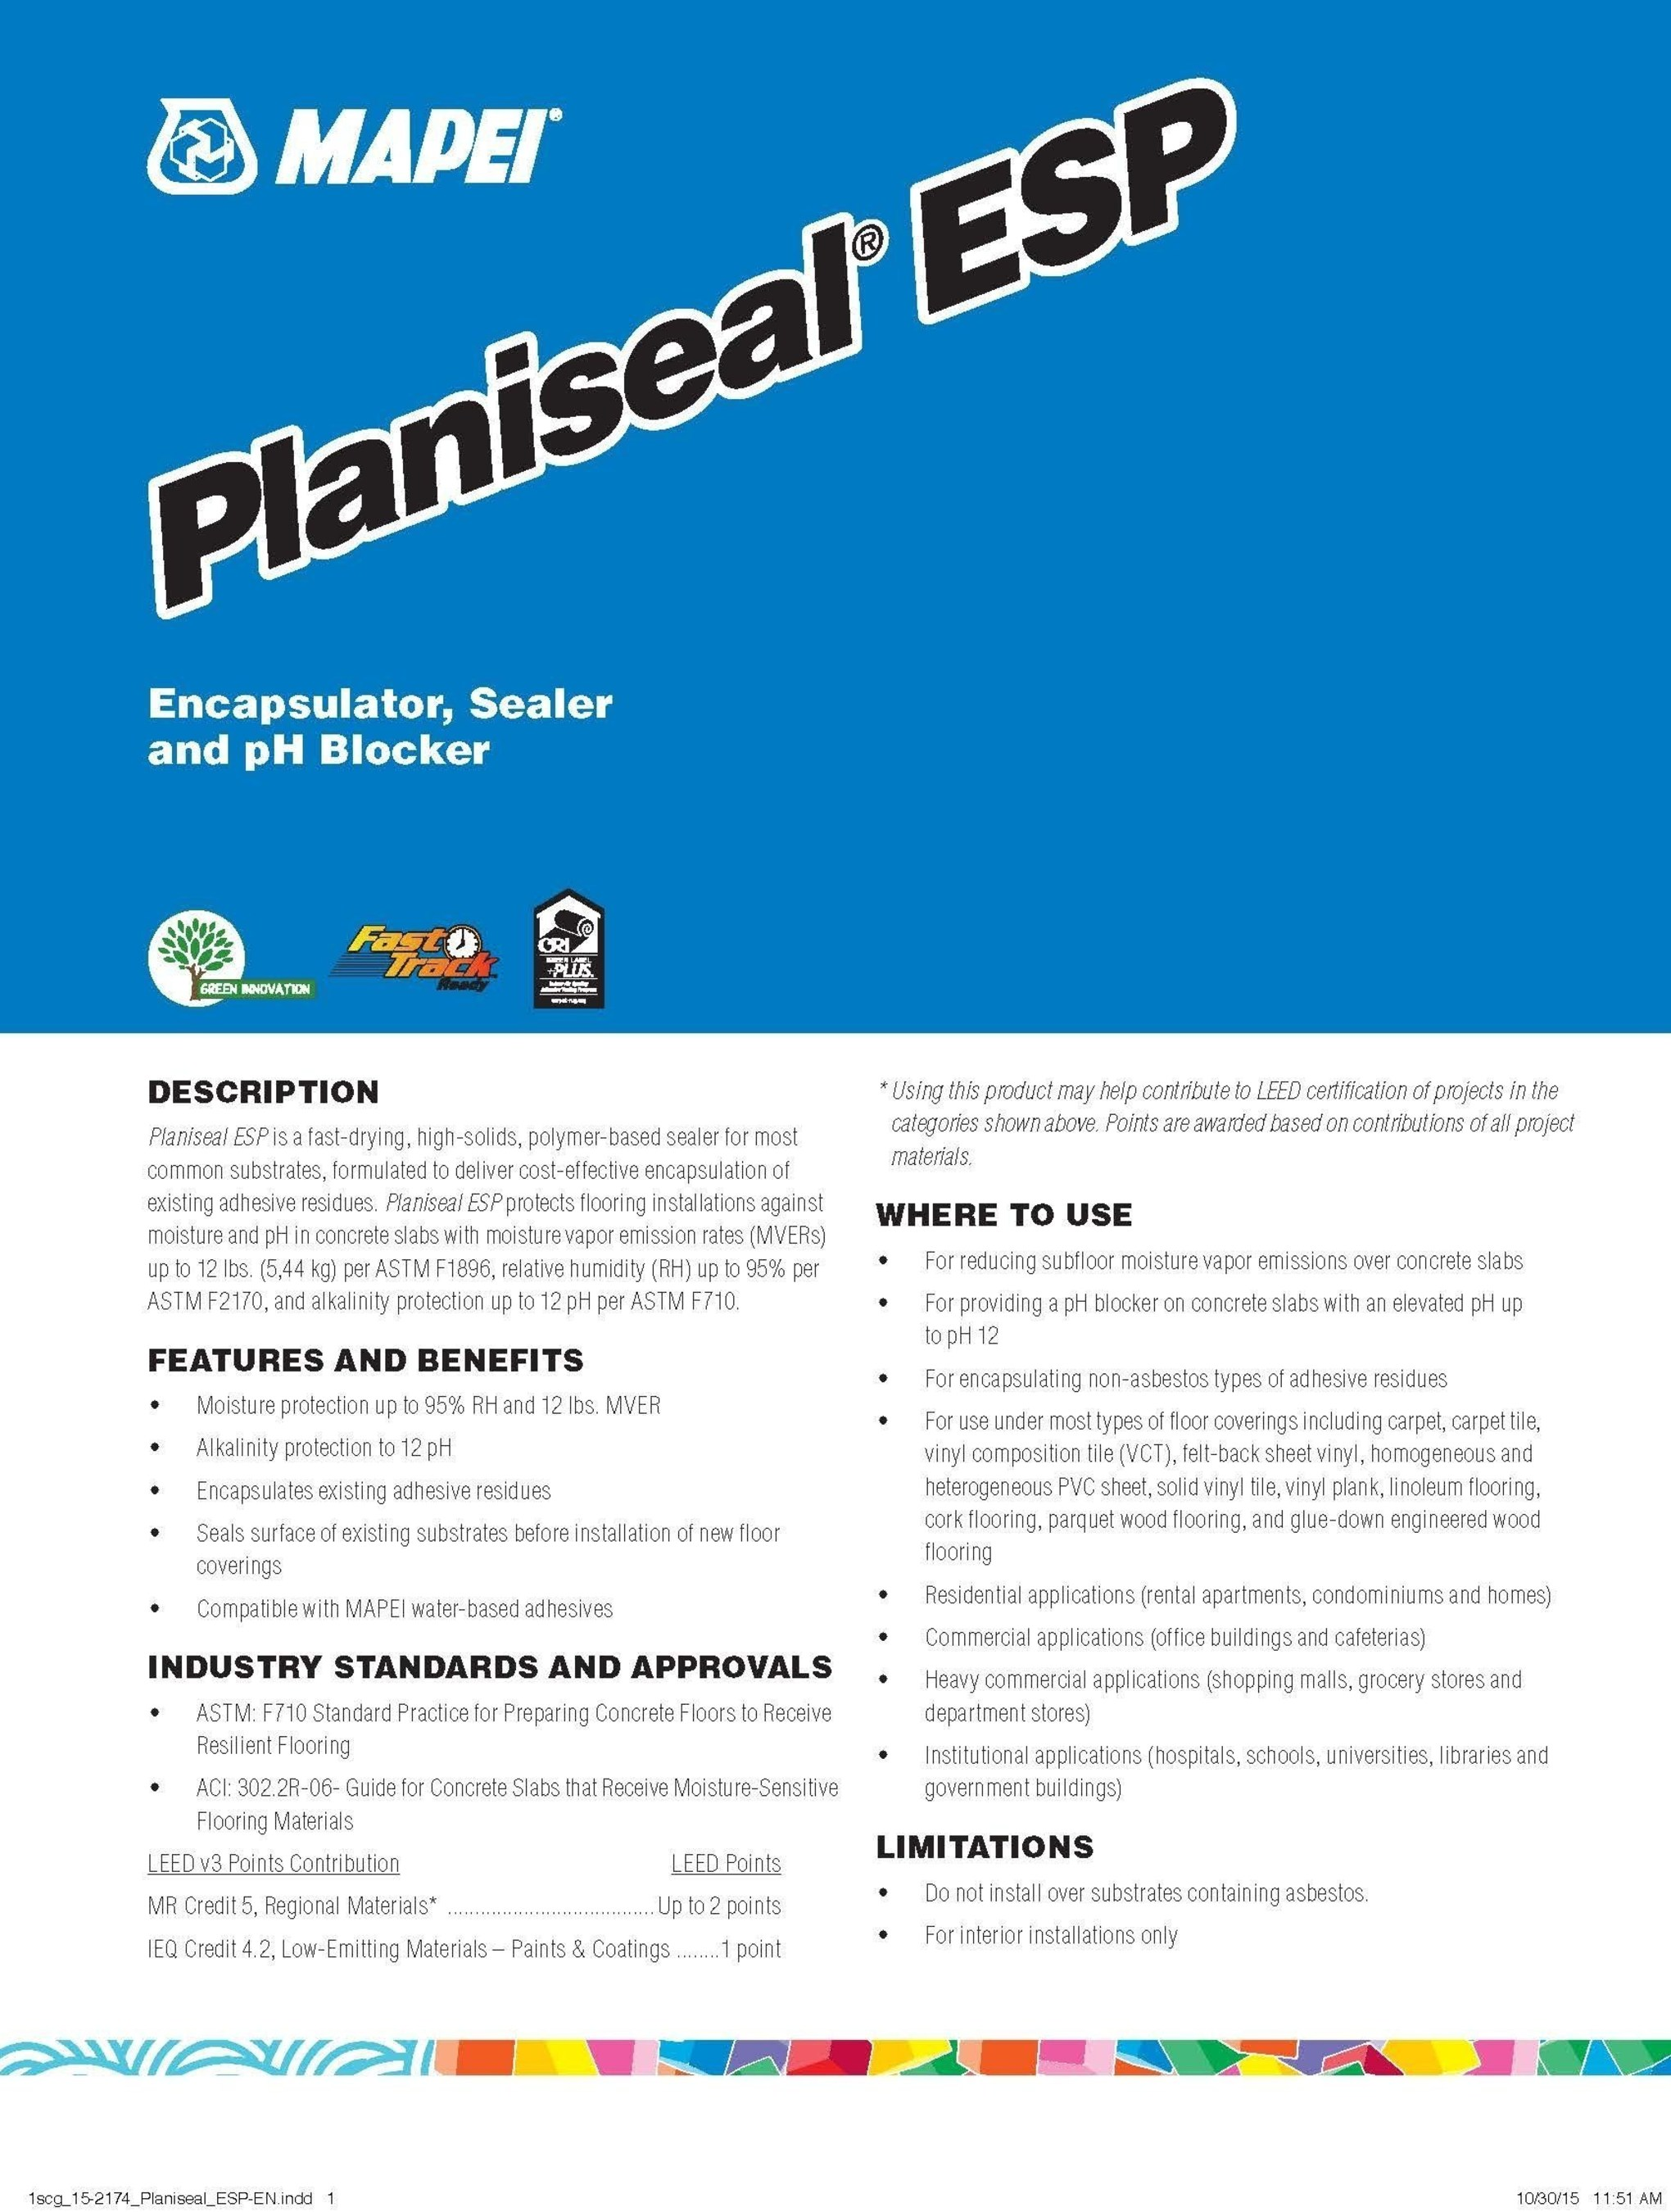 MAPEI Planiseal ESP - A Game-Changer in Controlling Moisture and pH Below Finished Flooring